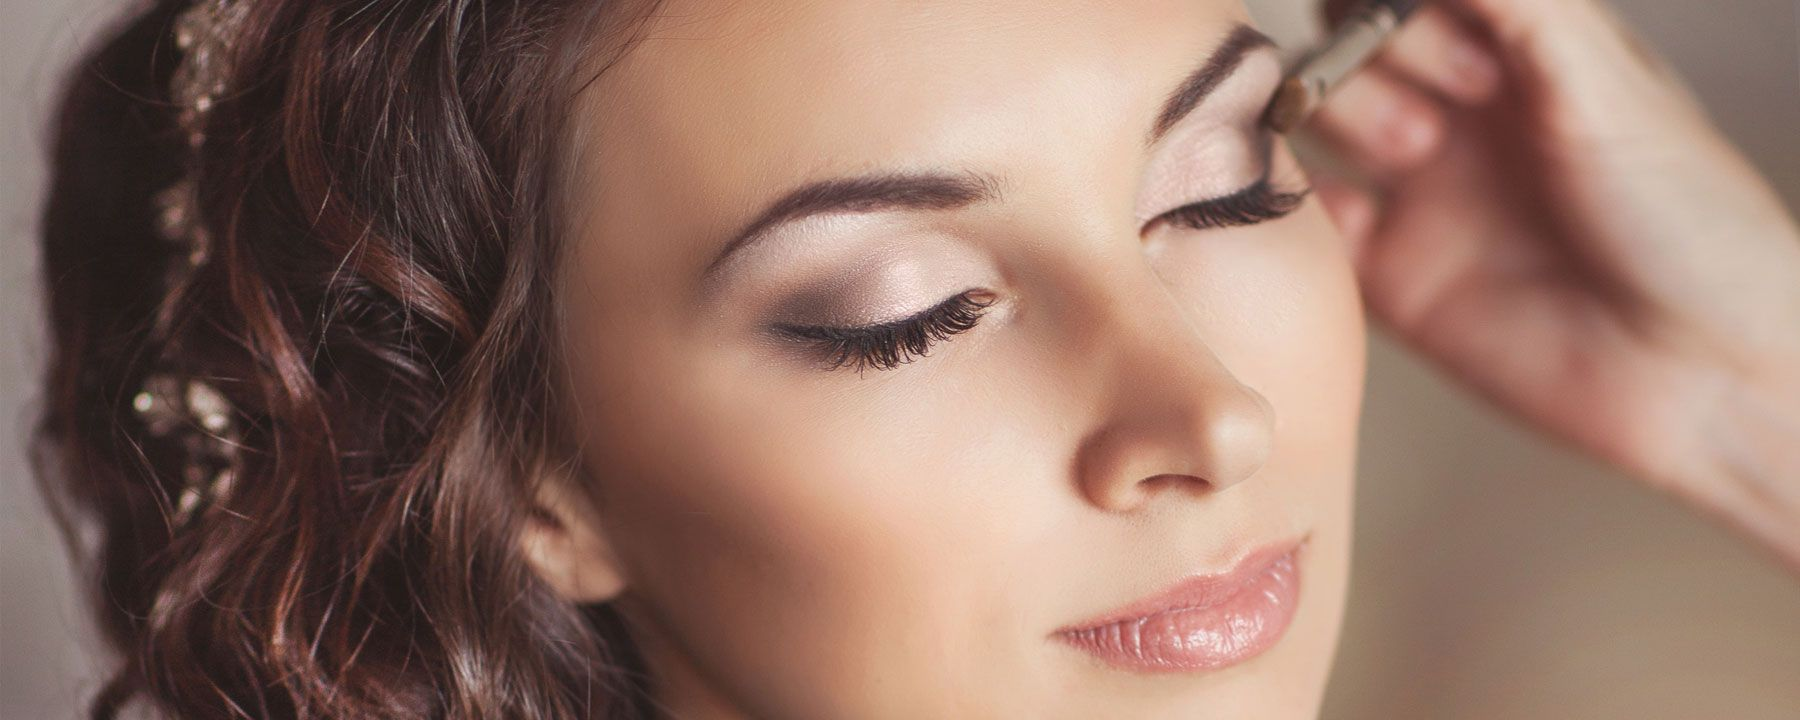 Braut Make-up Sprinkart Kosmetik Kempten